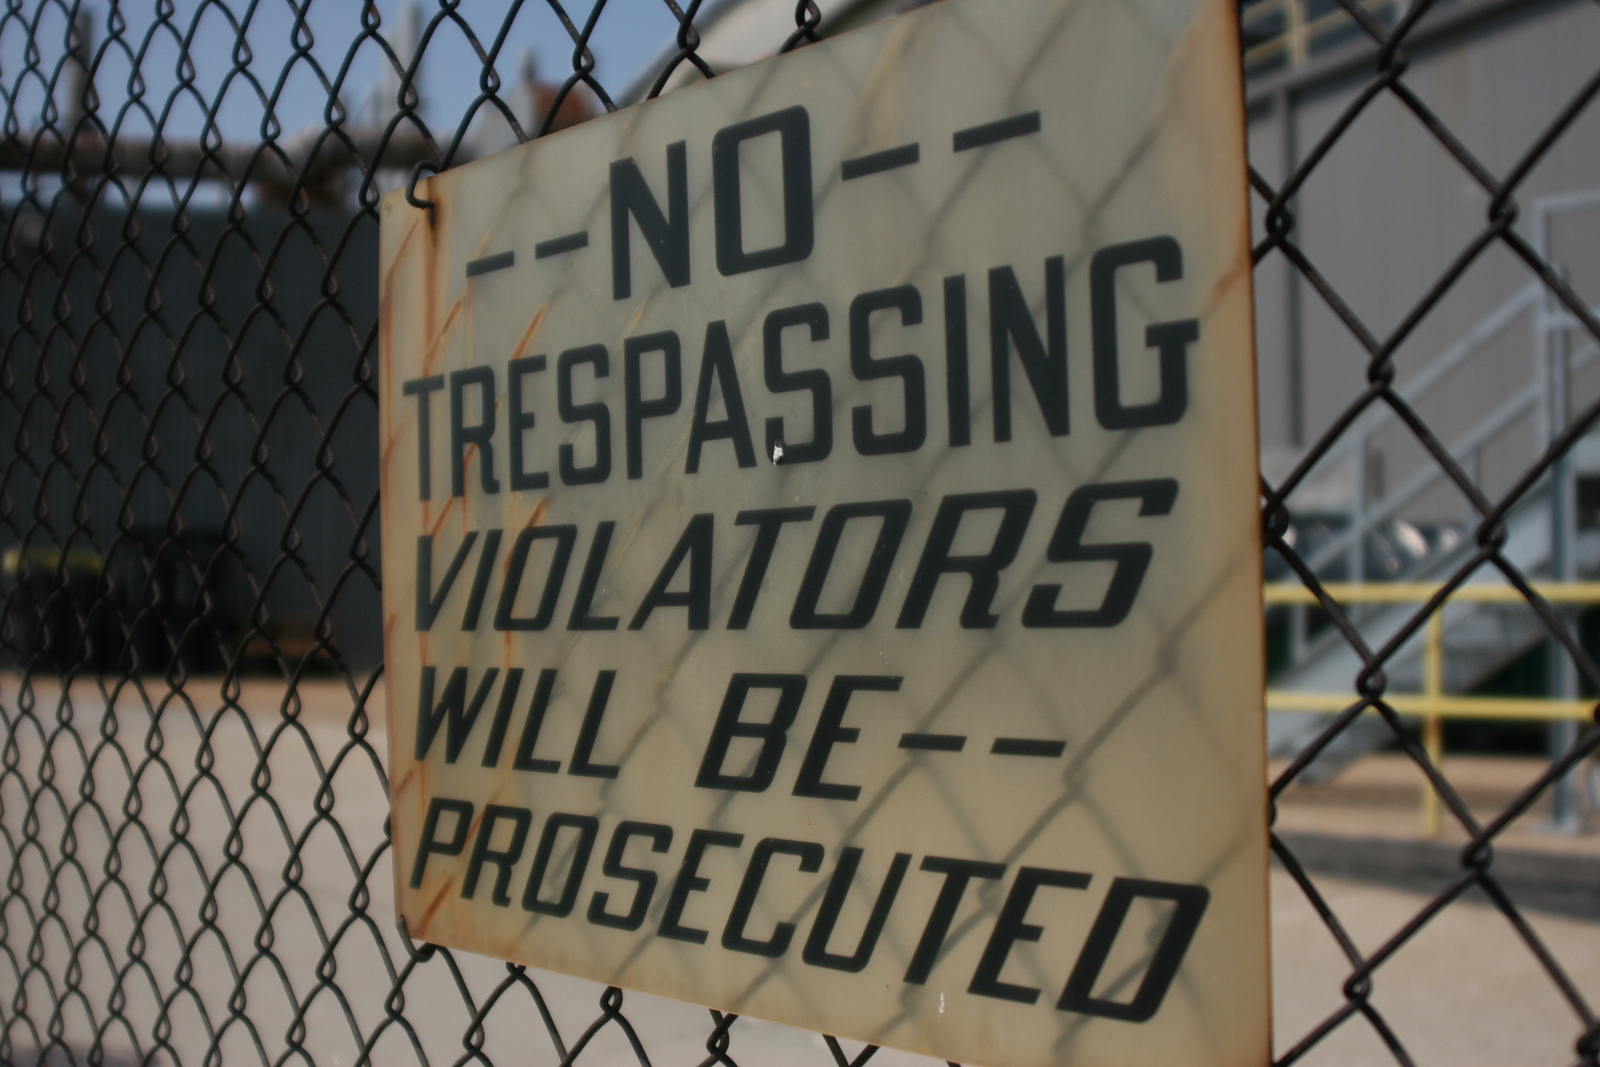 no trespassing letter